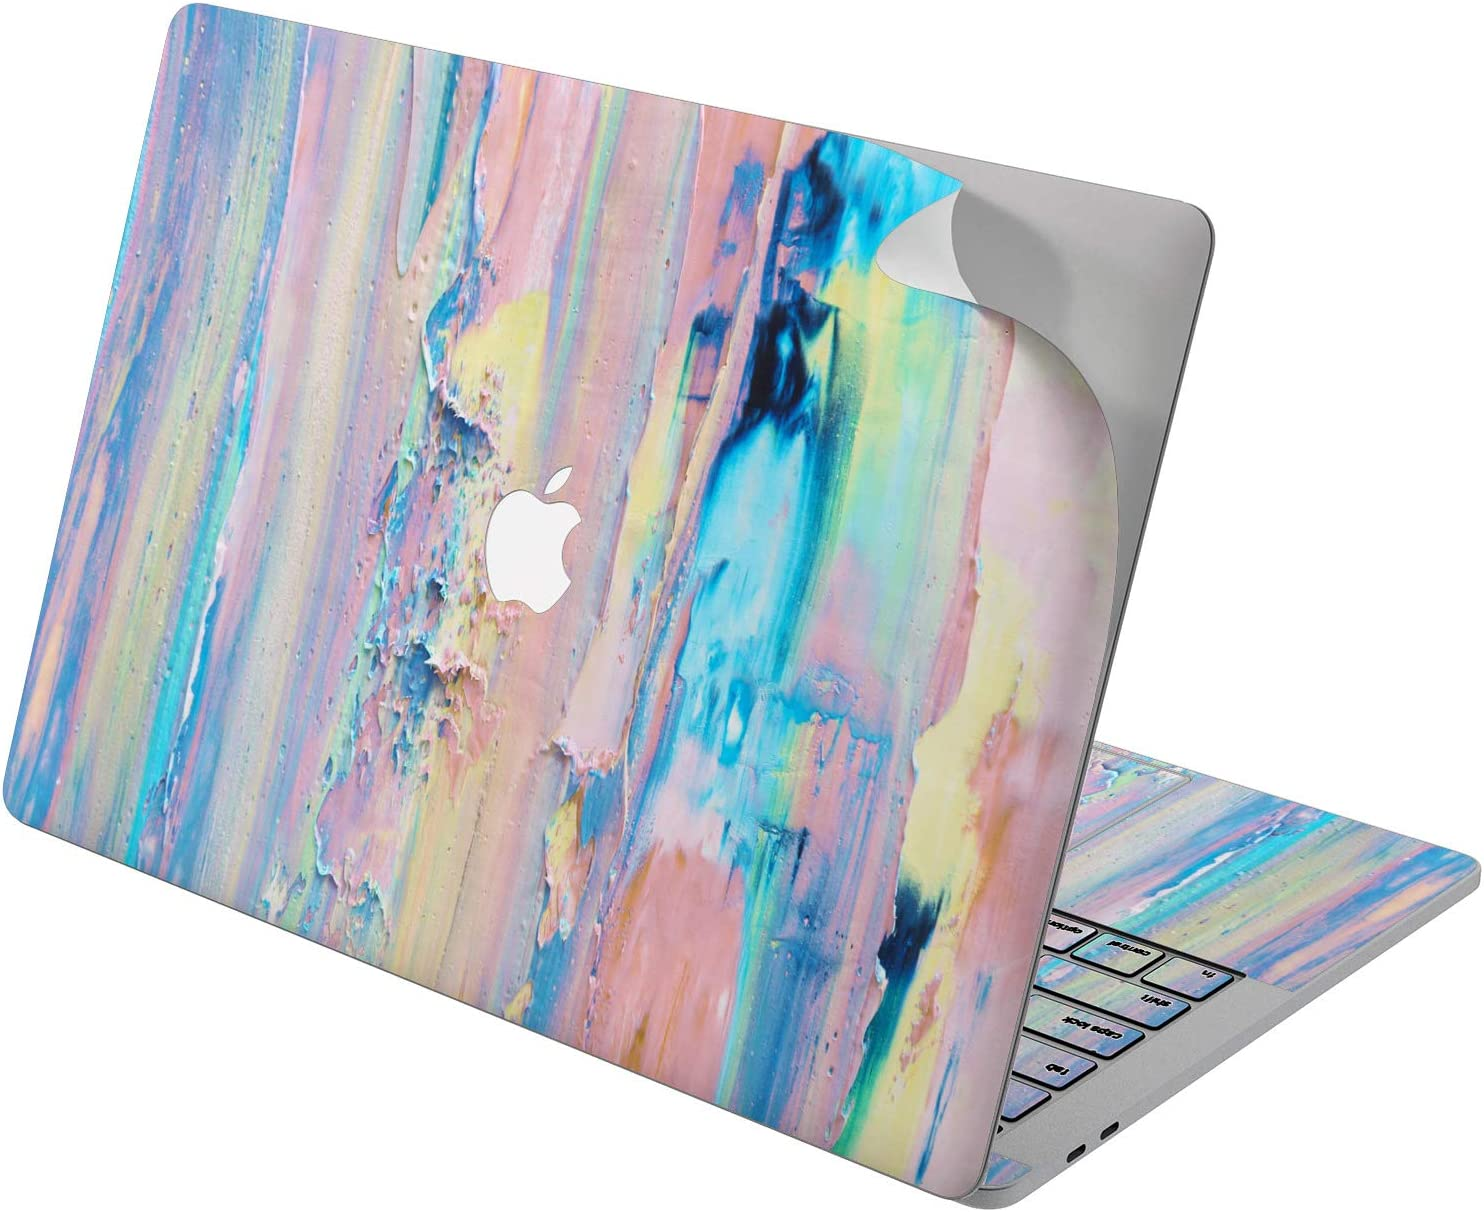 "Cavka Vinyl Decal Skin for Apple MacBook Pro 13"" 2019 15"" 2018 Air 13"" 2020 Retina 2015 Mac 11"" Mac 12"" Paint Emerald Pink Abstract Design Print Watercolor New Cover Sticker Pattern Laptop Protective"